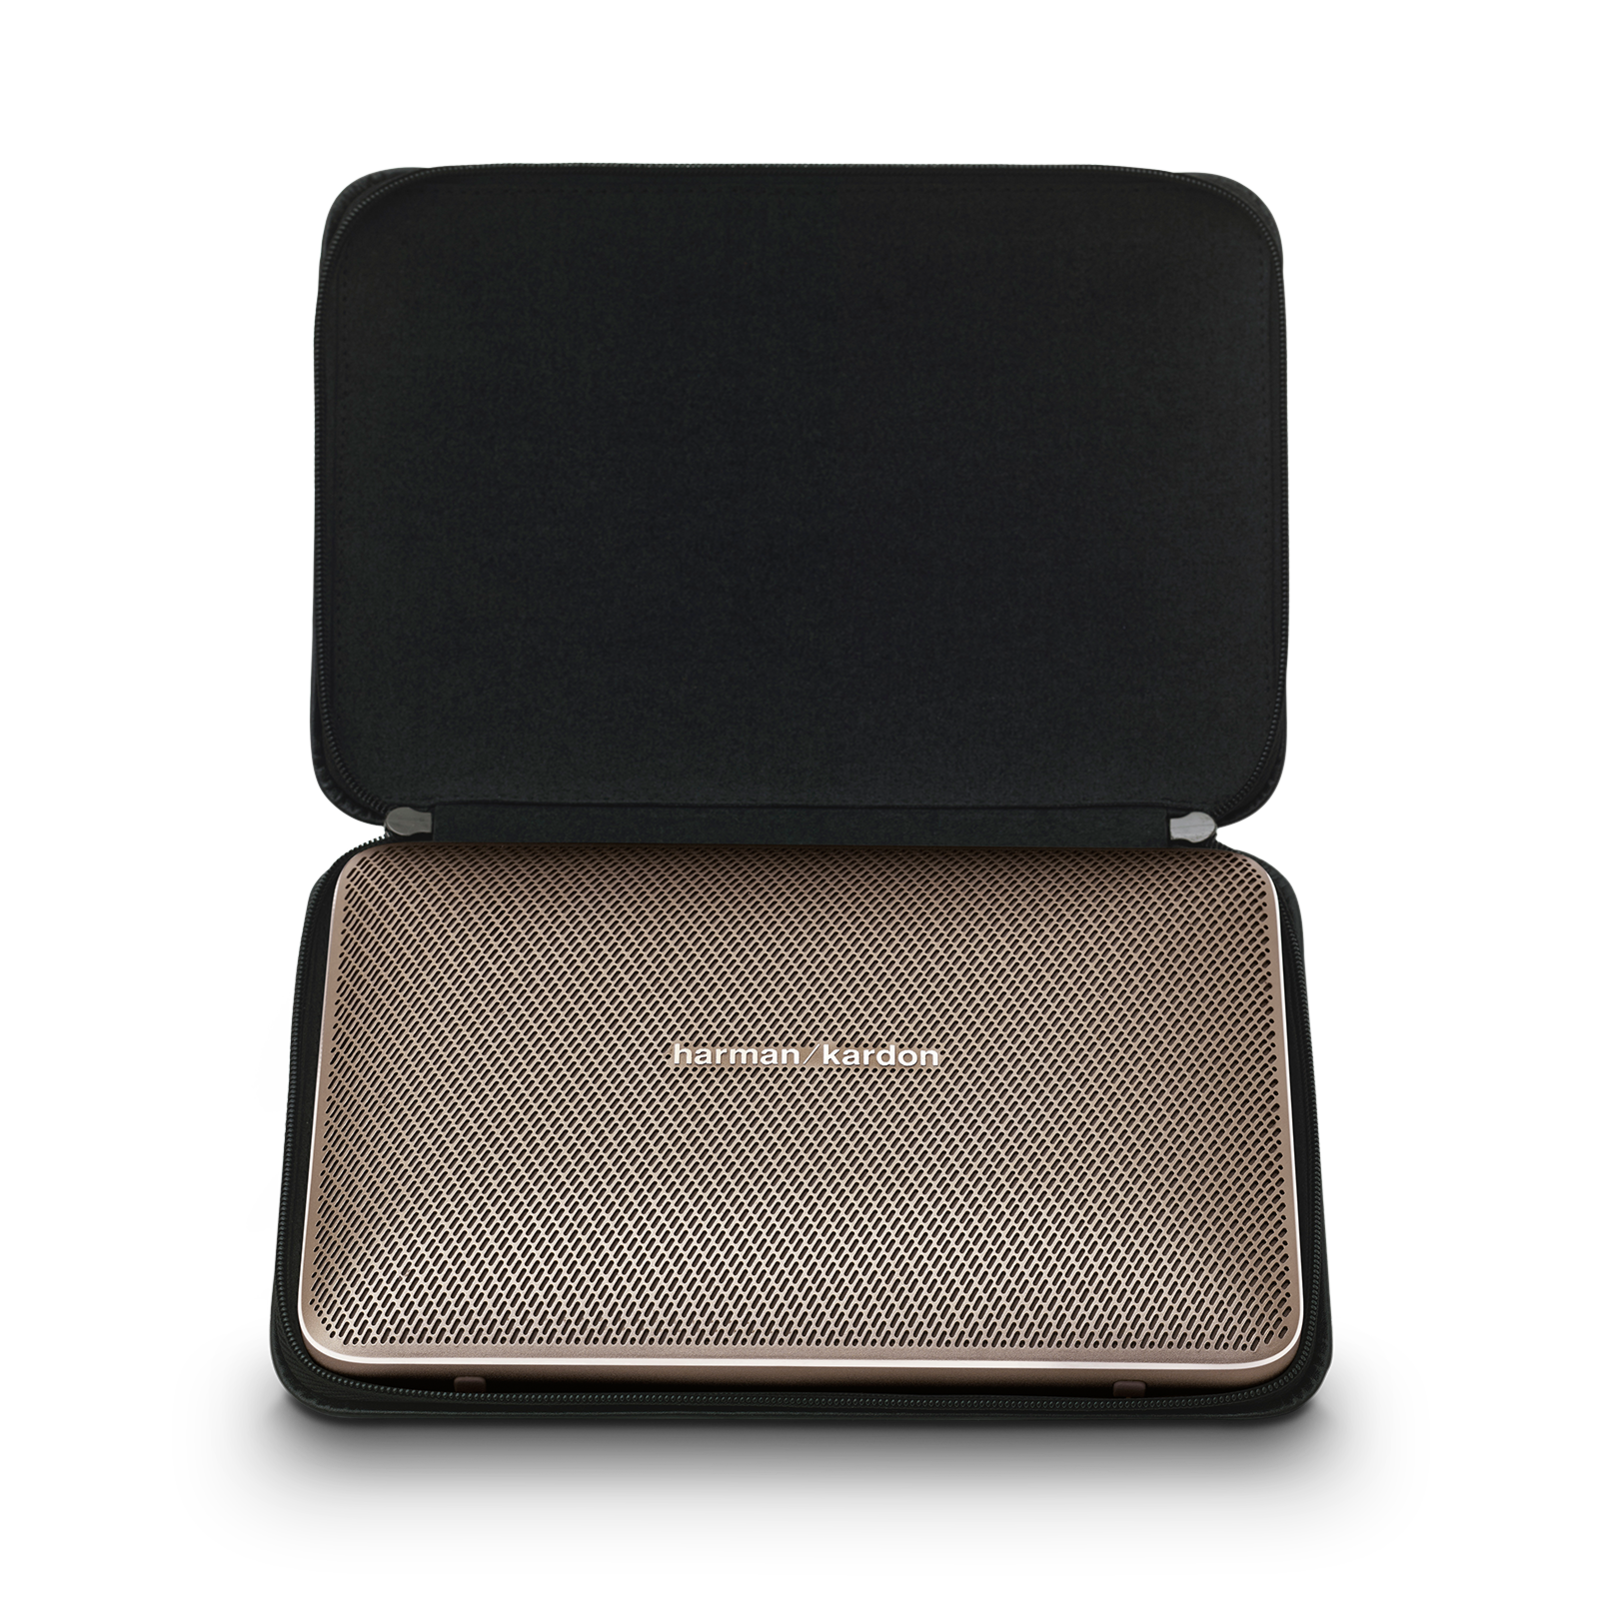 esquire 2 carrying case carrying case for harman kardon. Black Bedroom Furniture Sets. Home Design Ideas